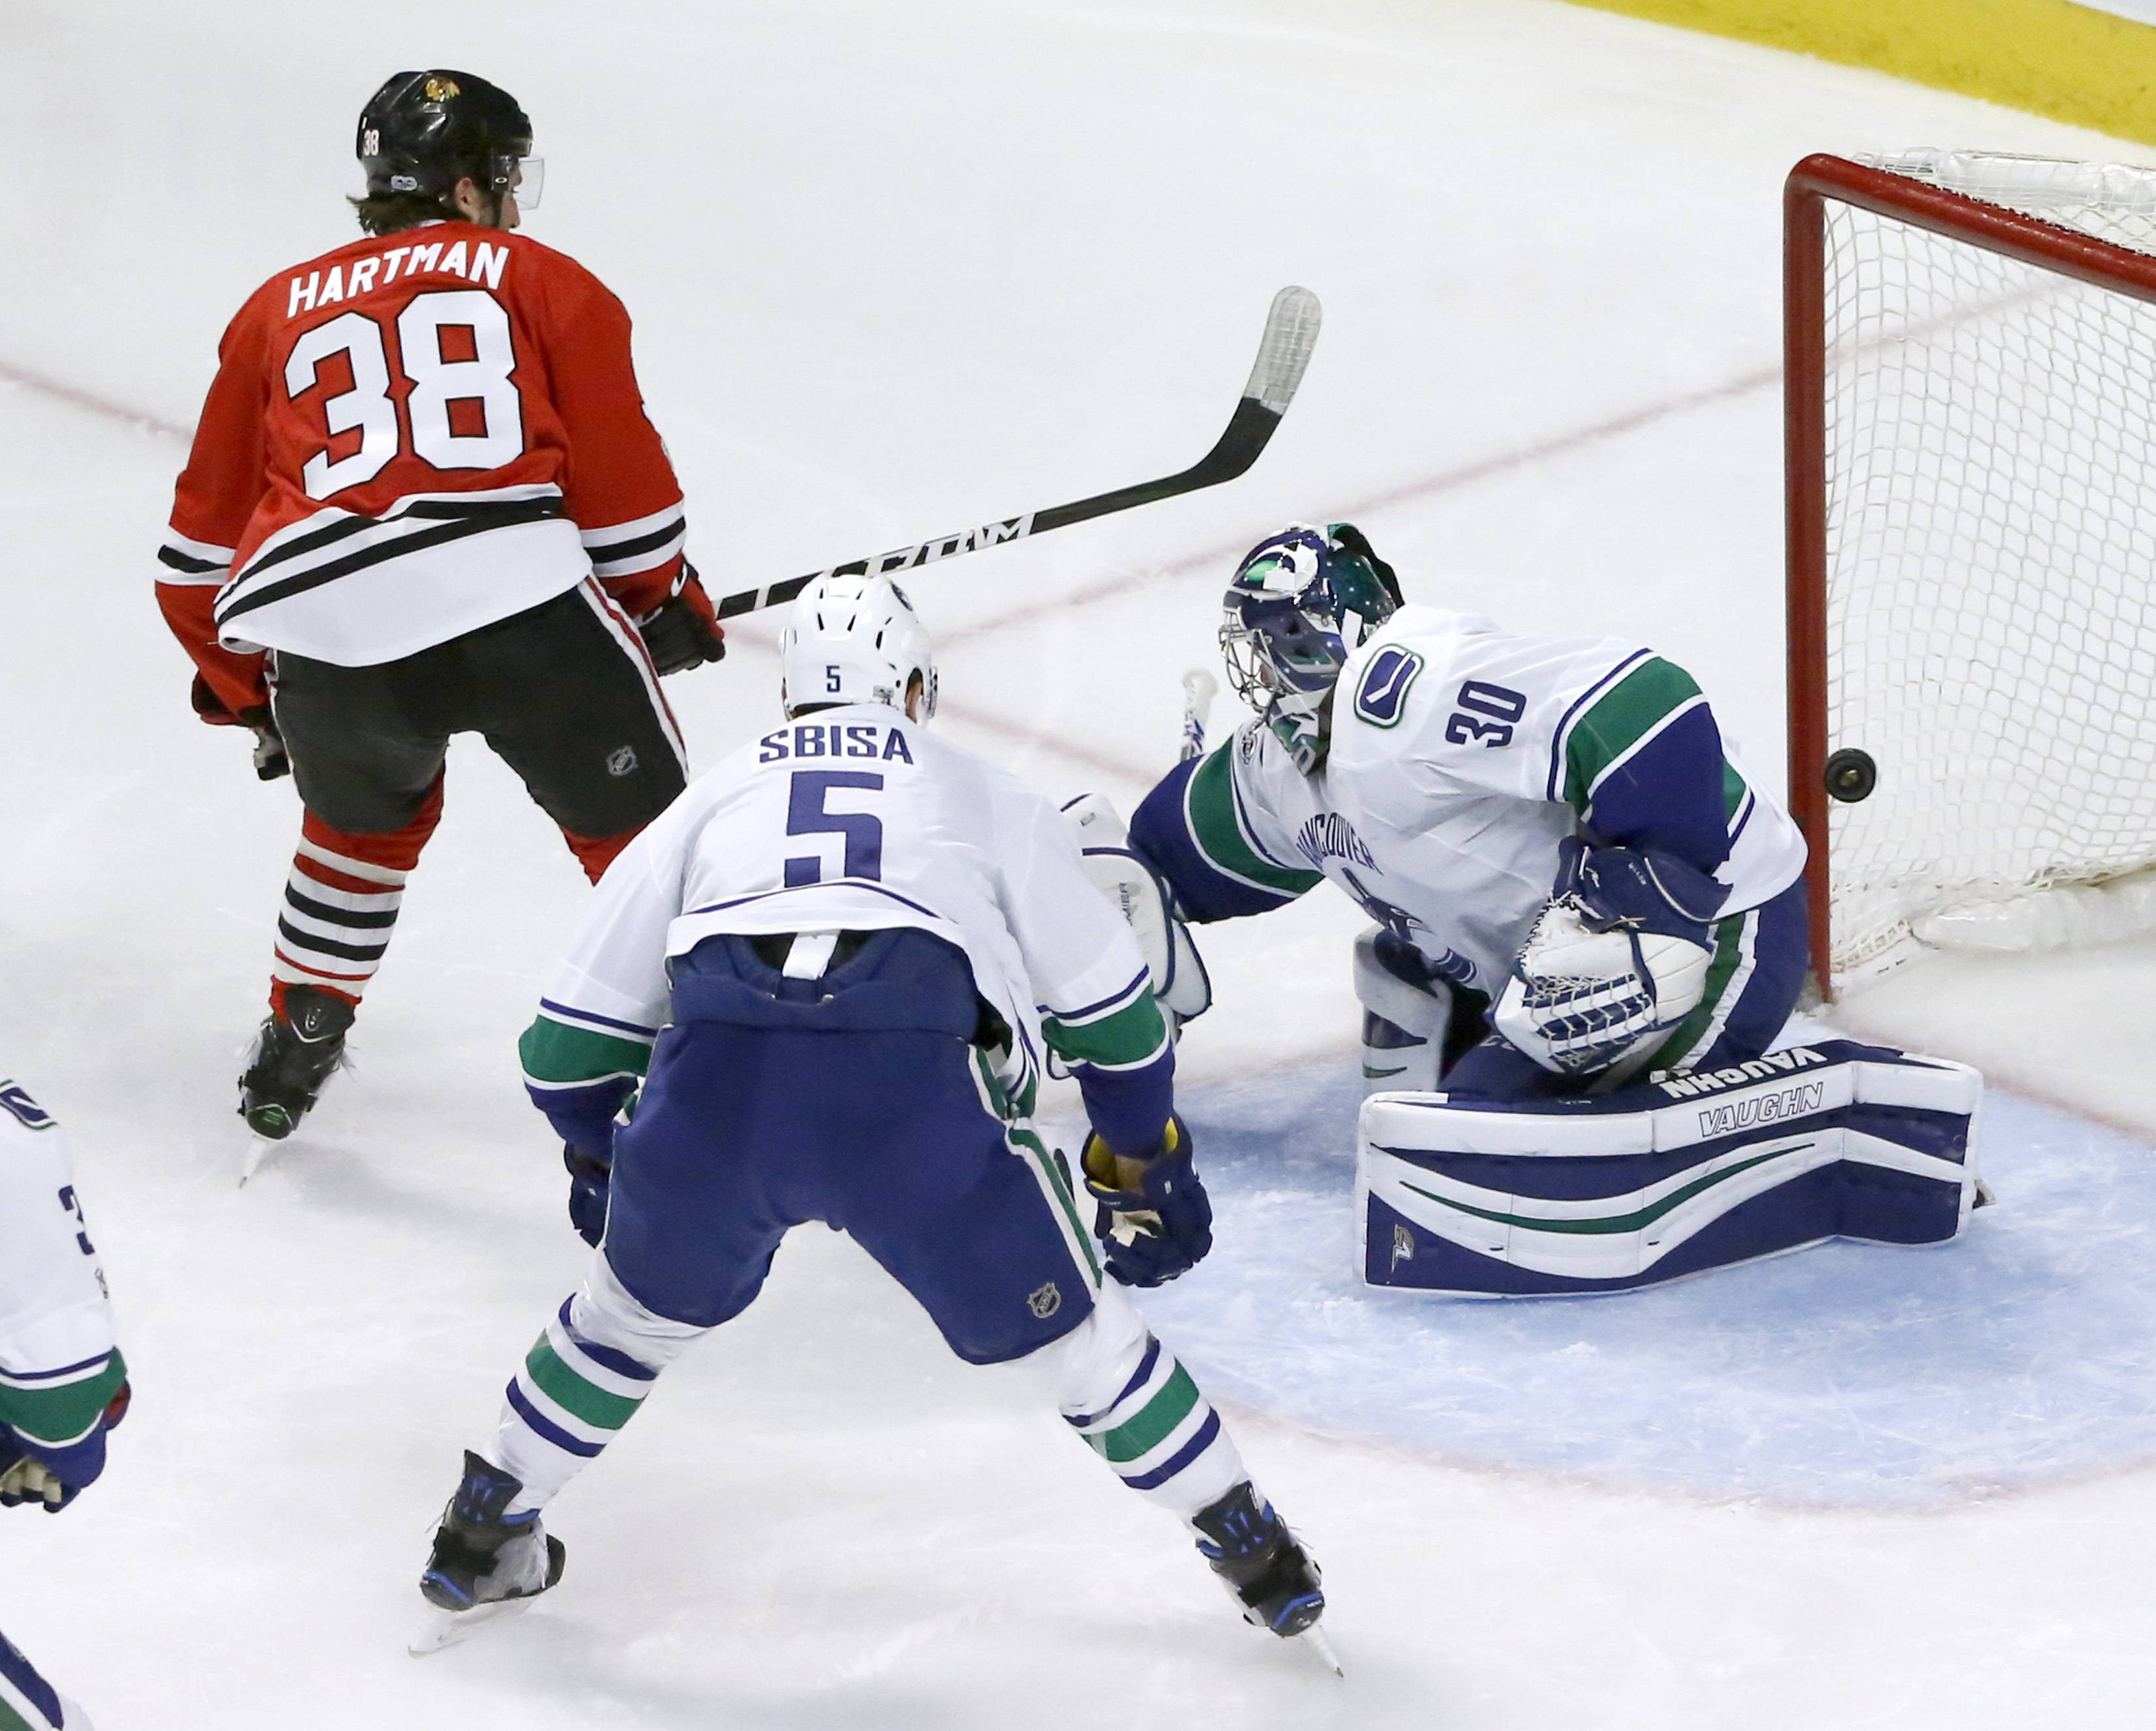 Chicago Blackhawks' Ryan Hartman (38) scores past Vancouver Canucks goalie Ryan Miller, as Luca Sbisa (5) watches during the second period of an NHL hockey game Tuesday, March 21, 2017, in Chicago. (AP Photo/Charles Rex Arbogast)